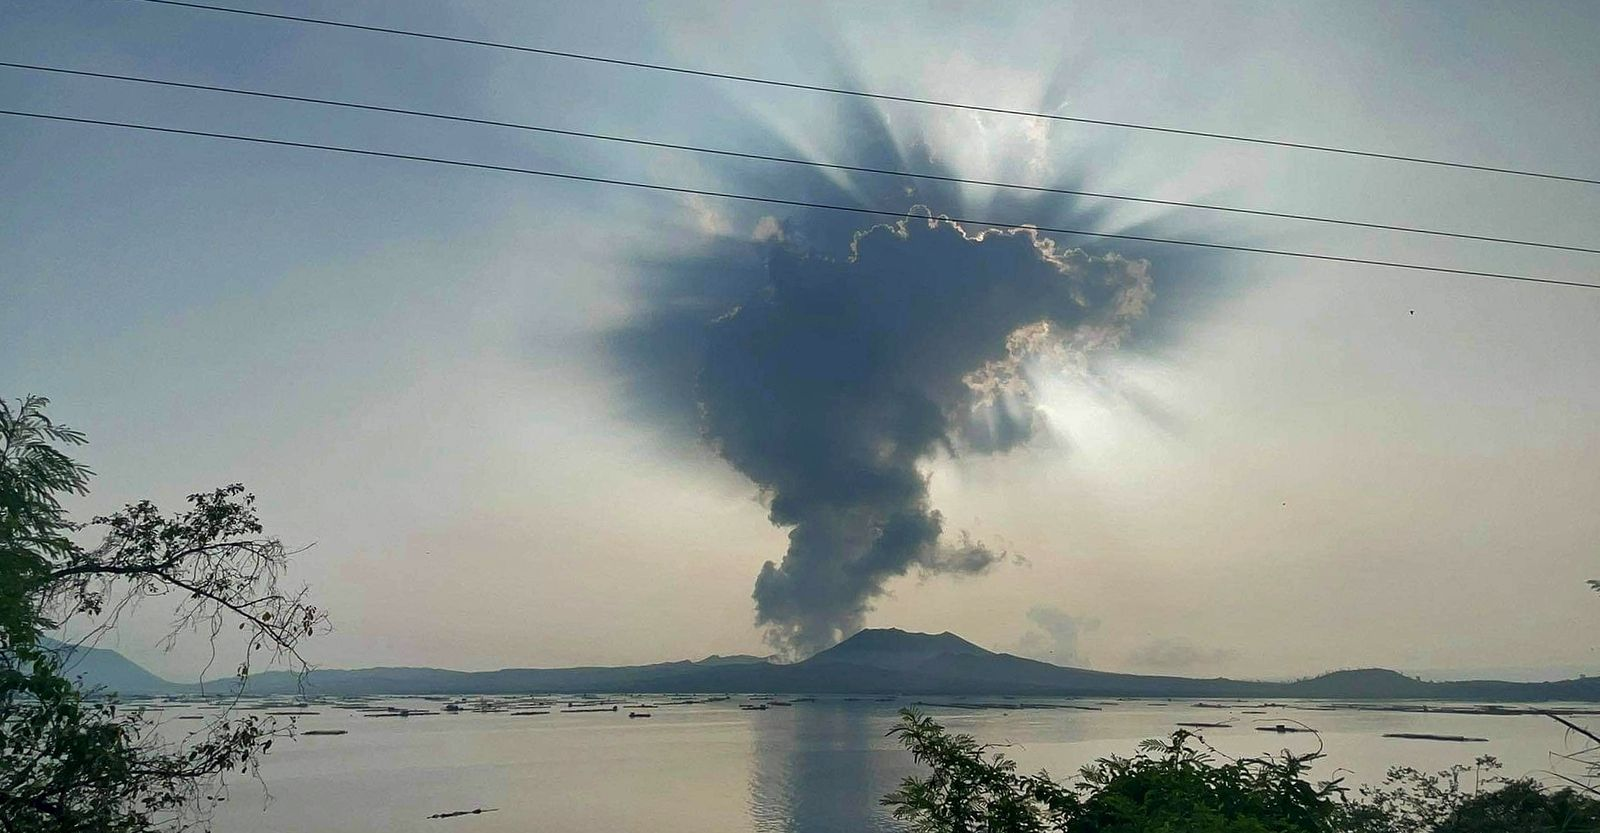 2021.07.01 Taal - gas and steam plume - photo Seys Marasigan / Seys Channel - via Philippine Weather System